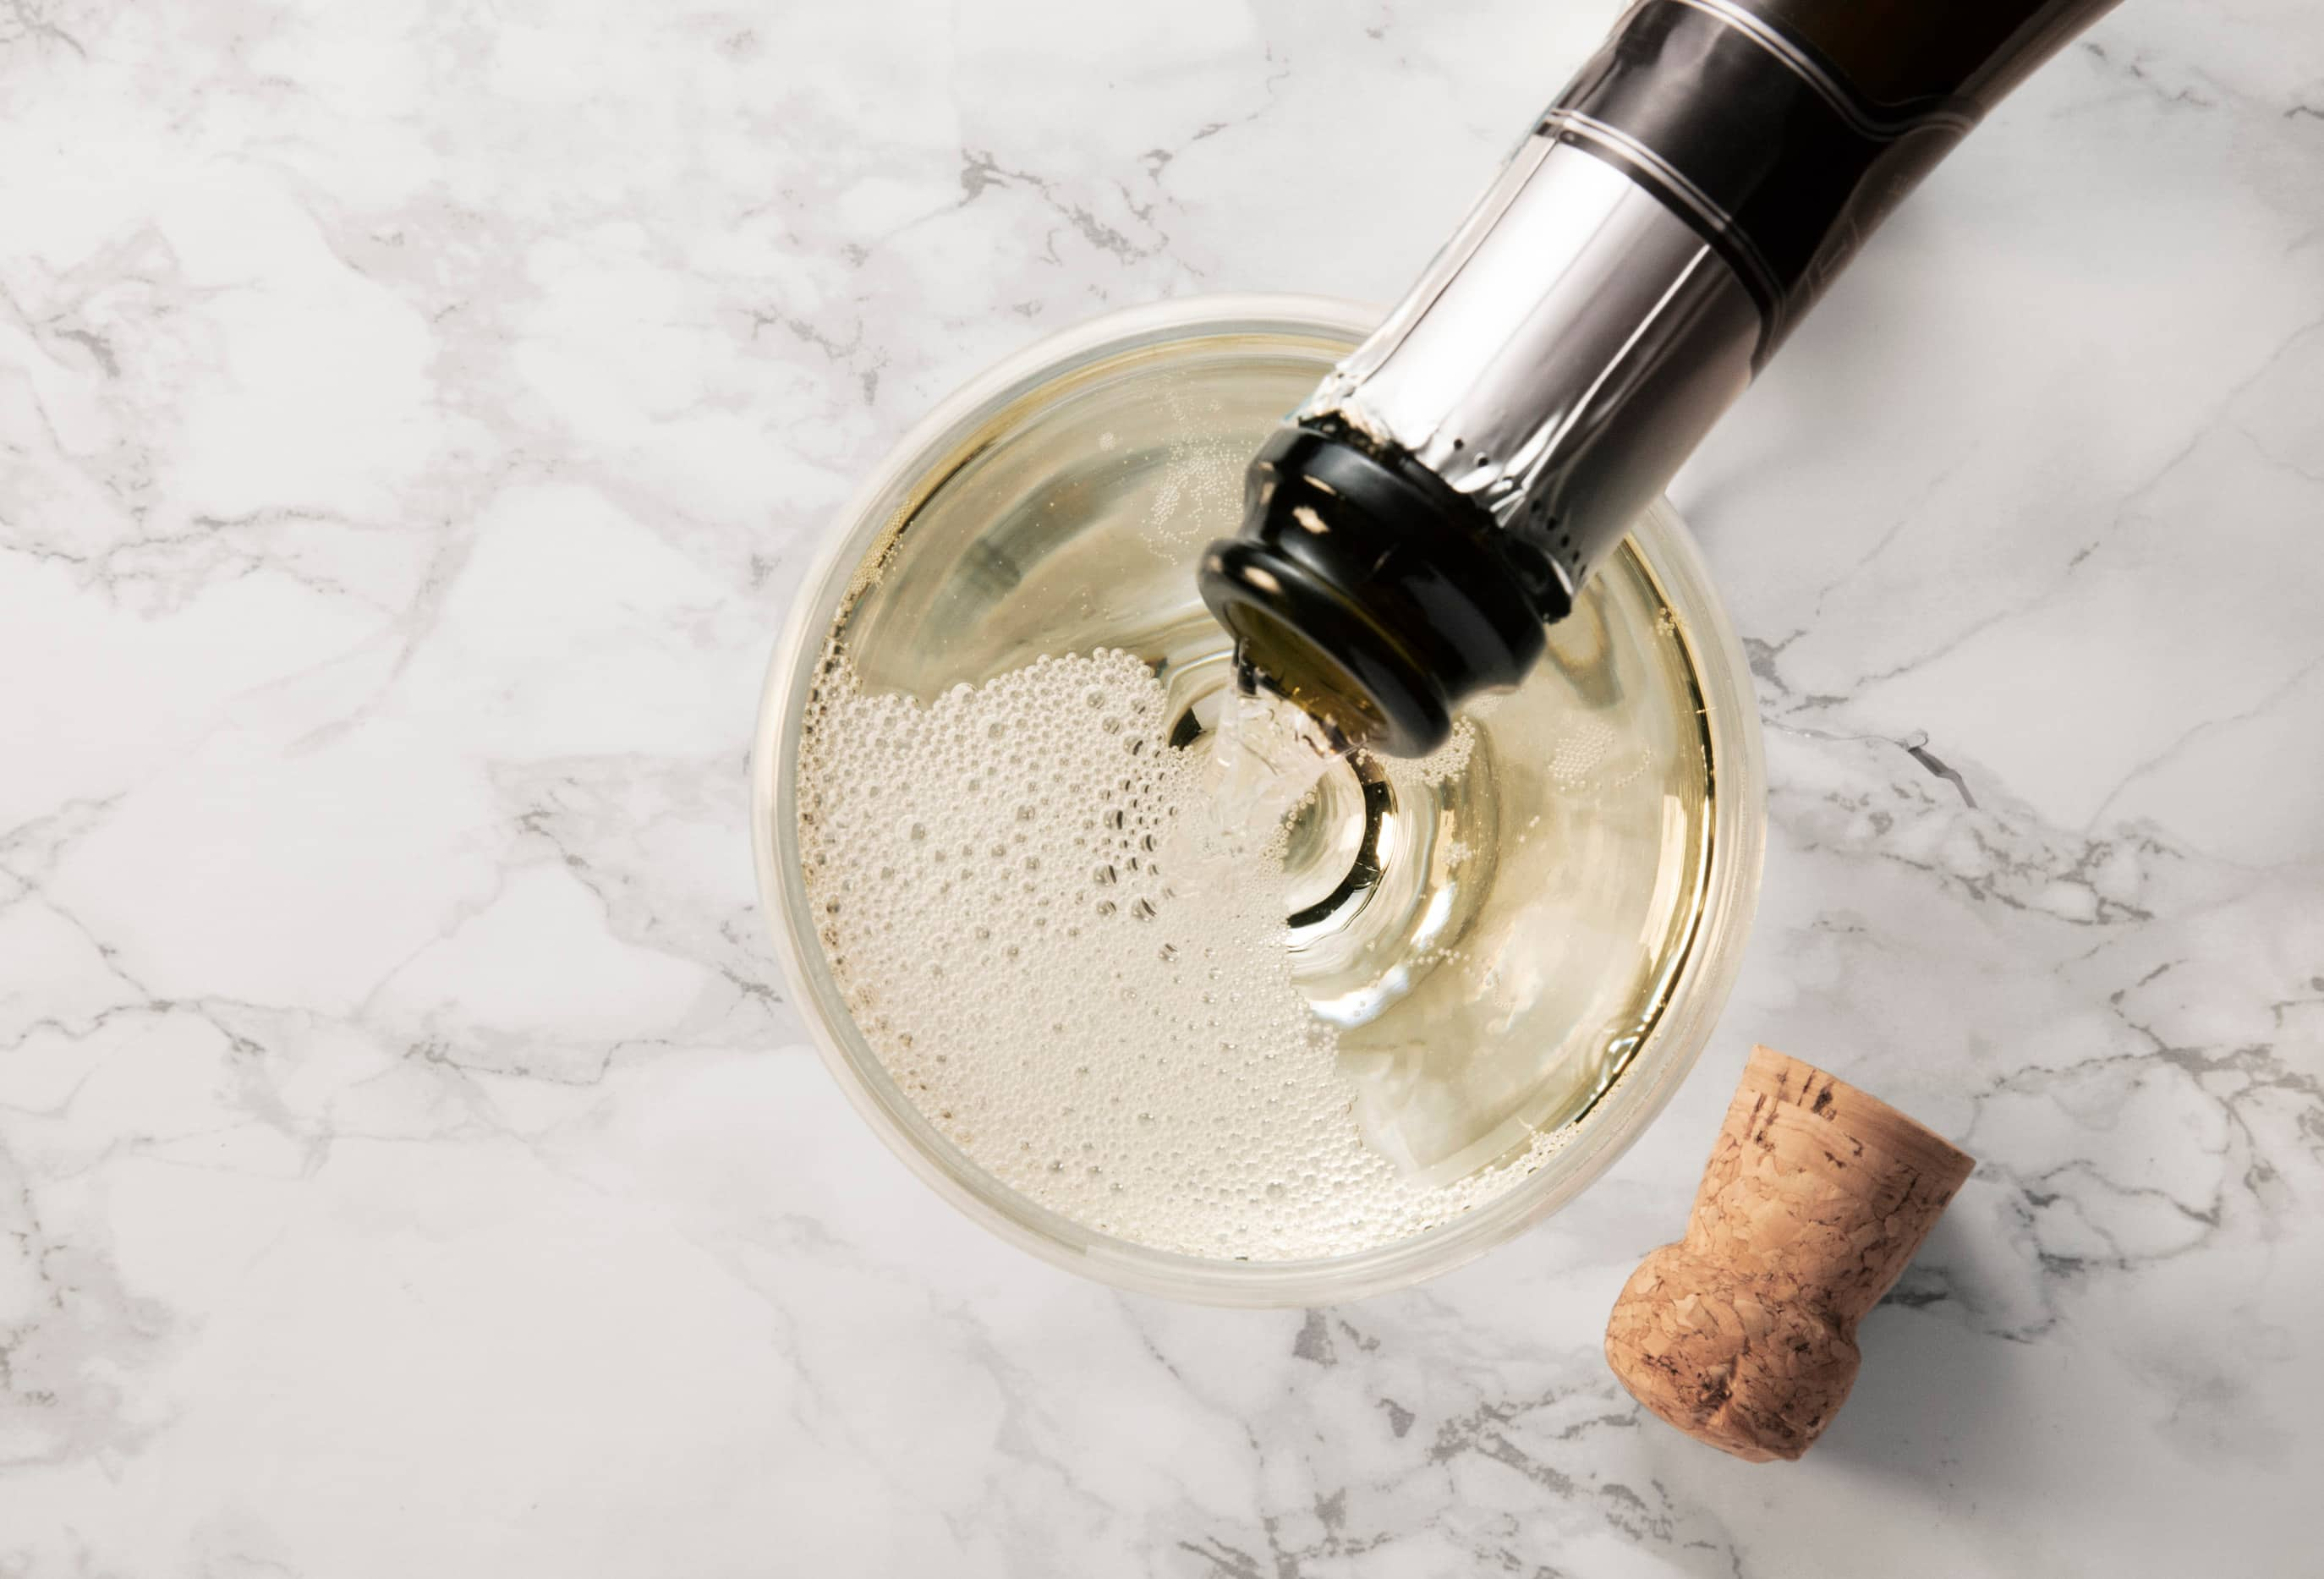 Clean Up White Wine Carpet Egymecdrillingtoolscom Hd